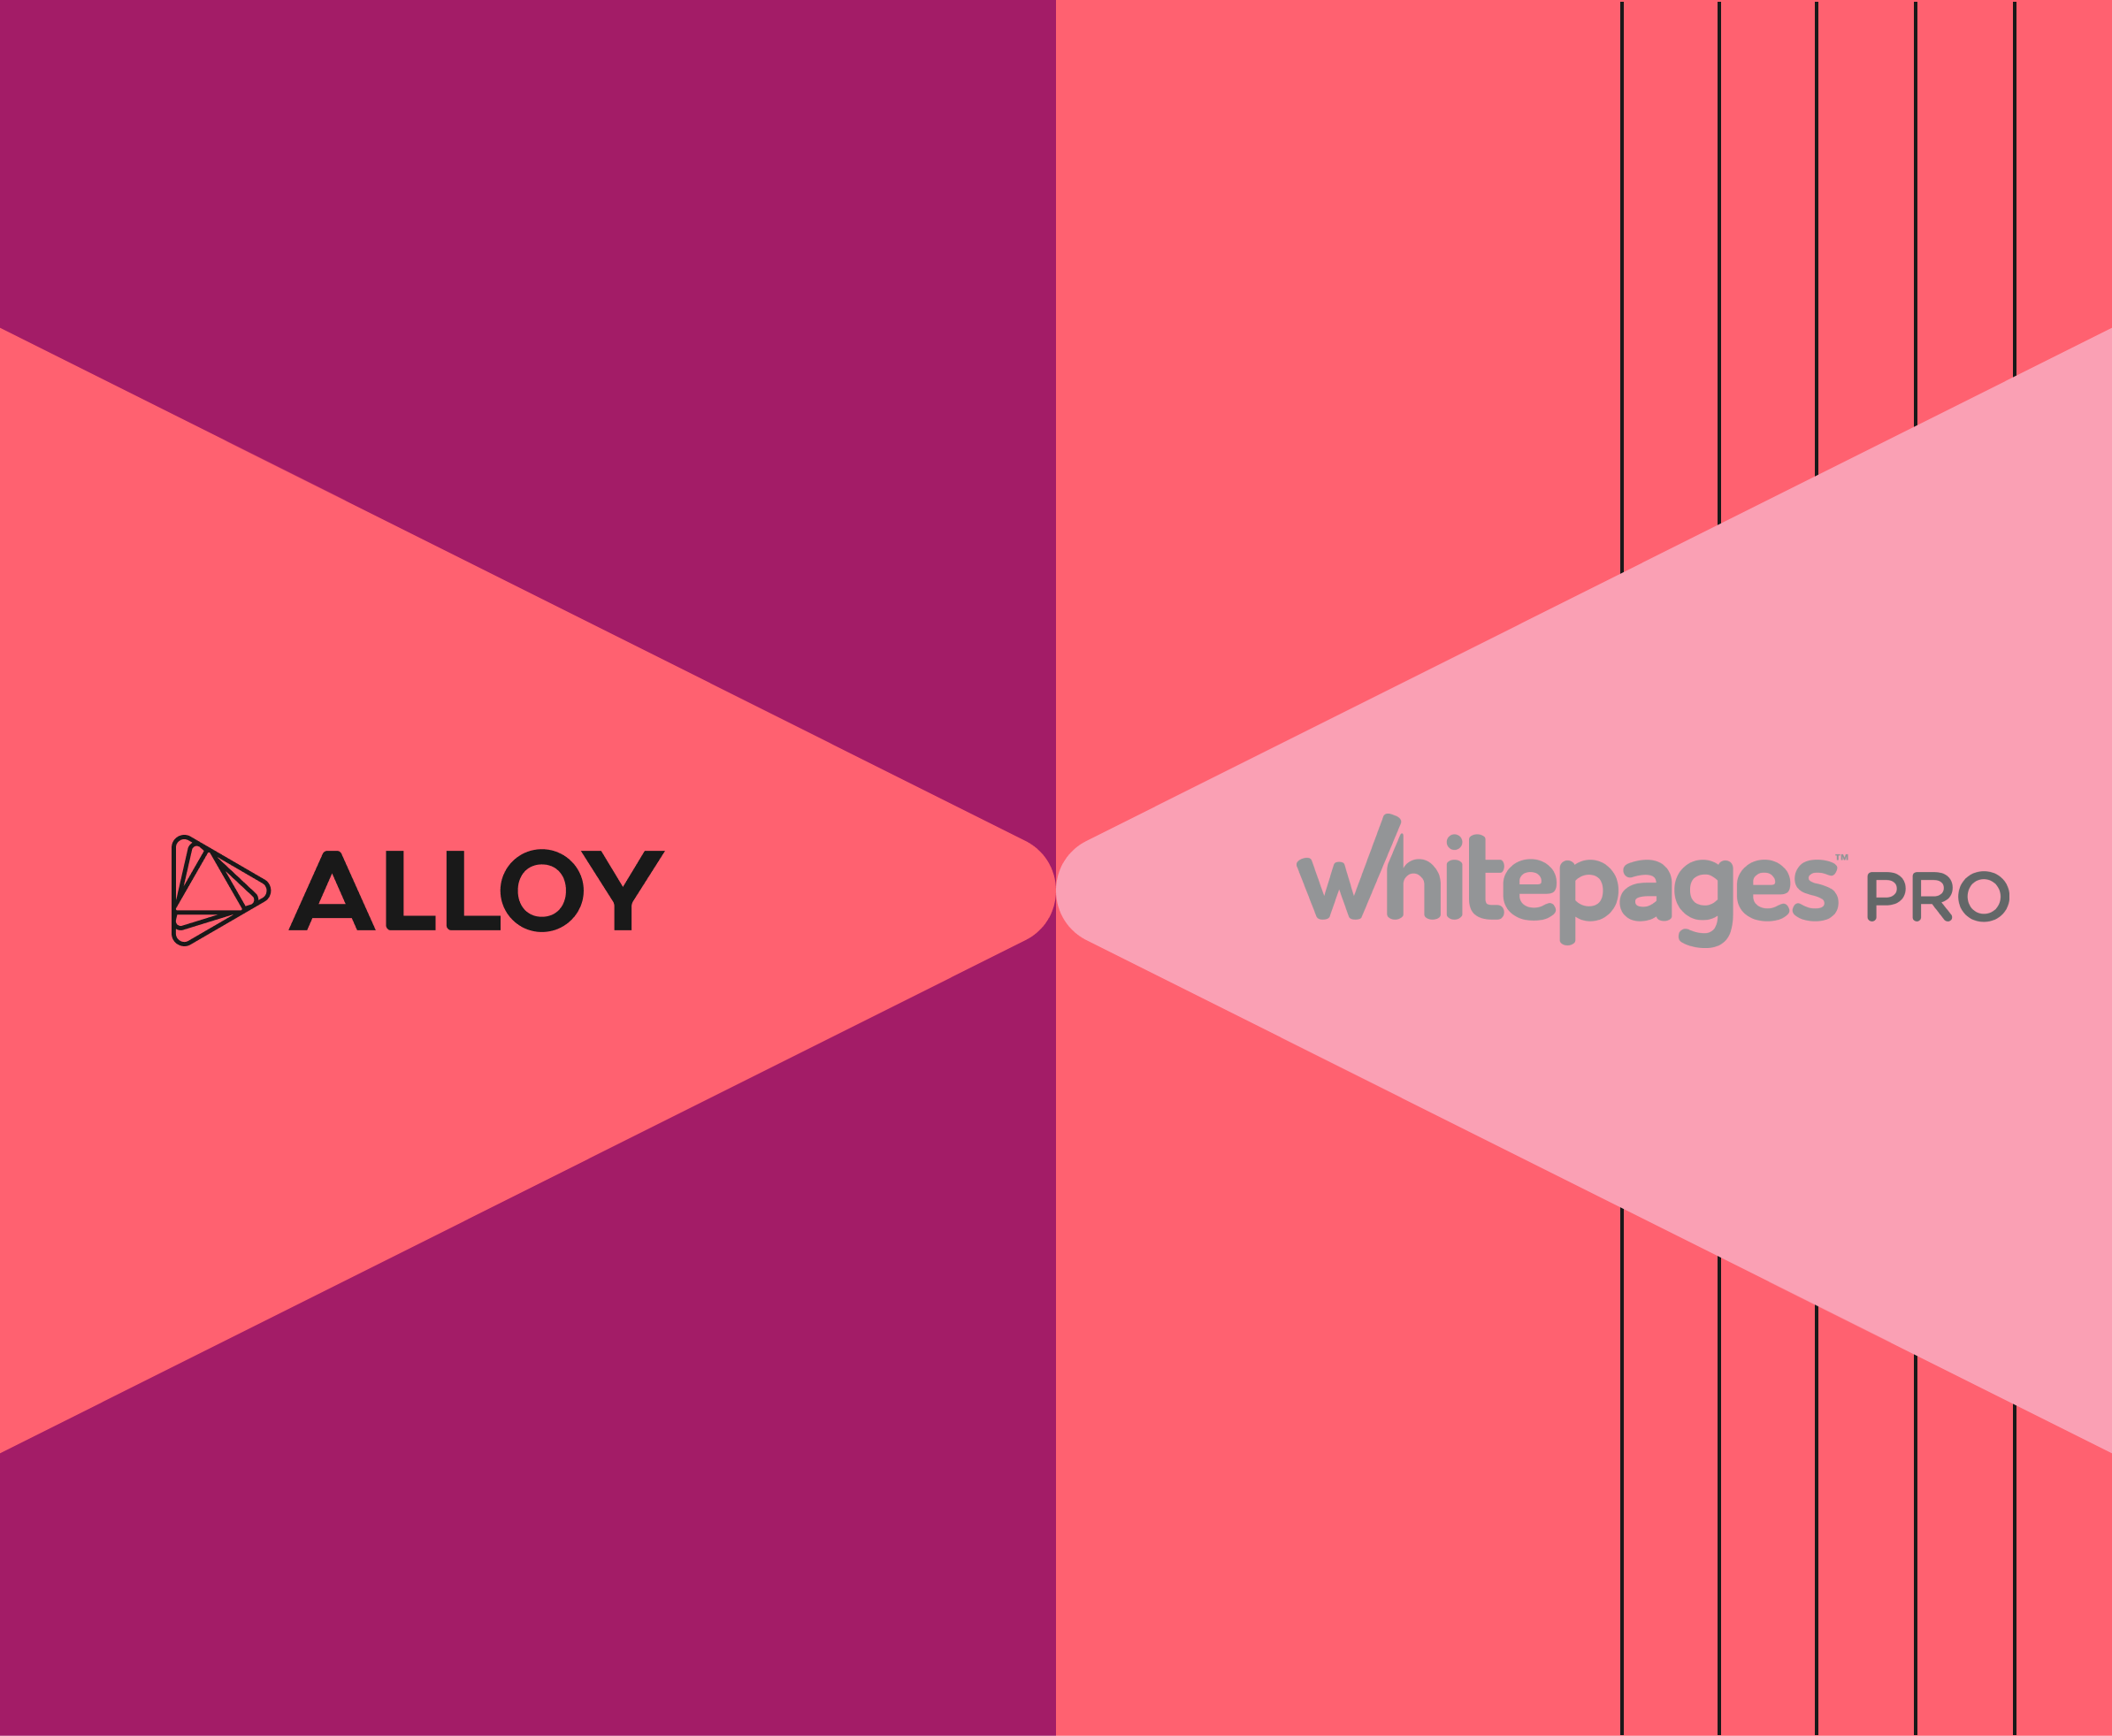 Whitepagespro alloy announce partnership